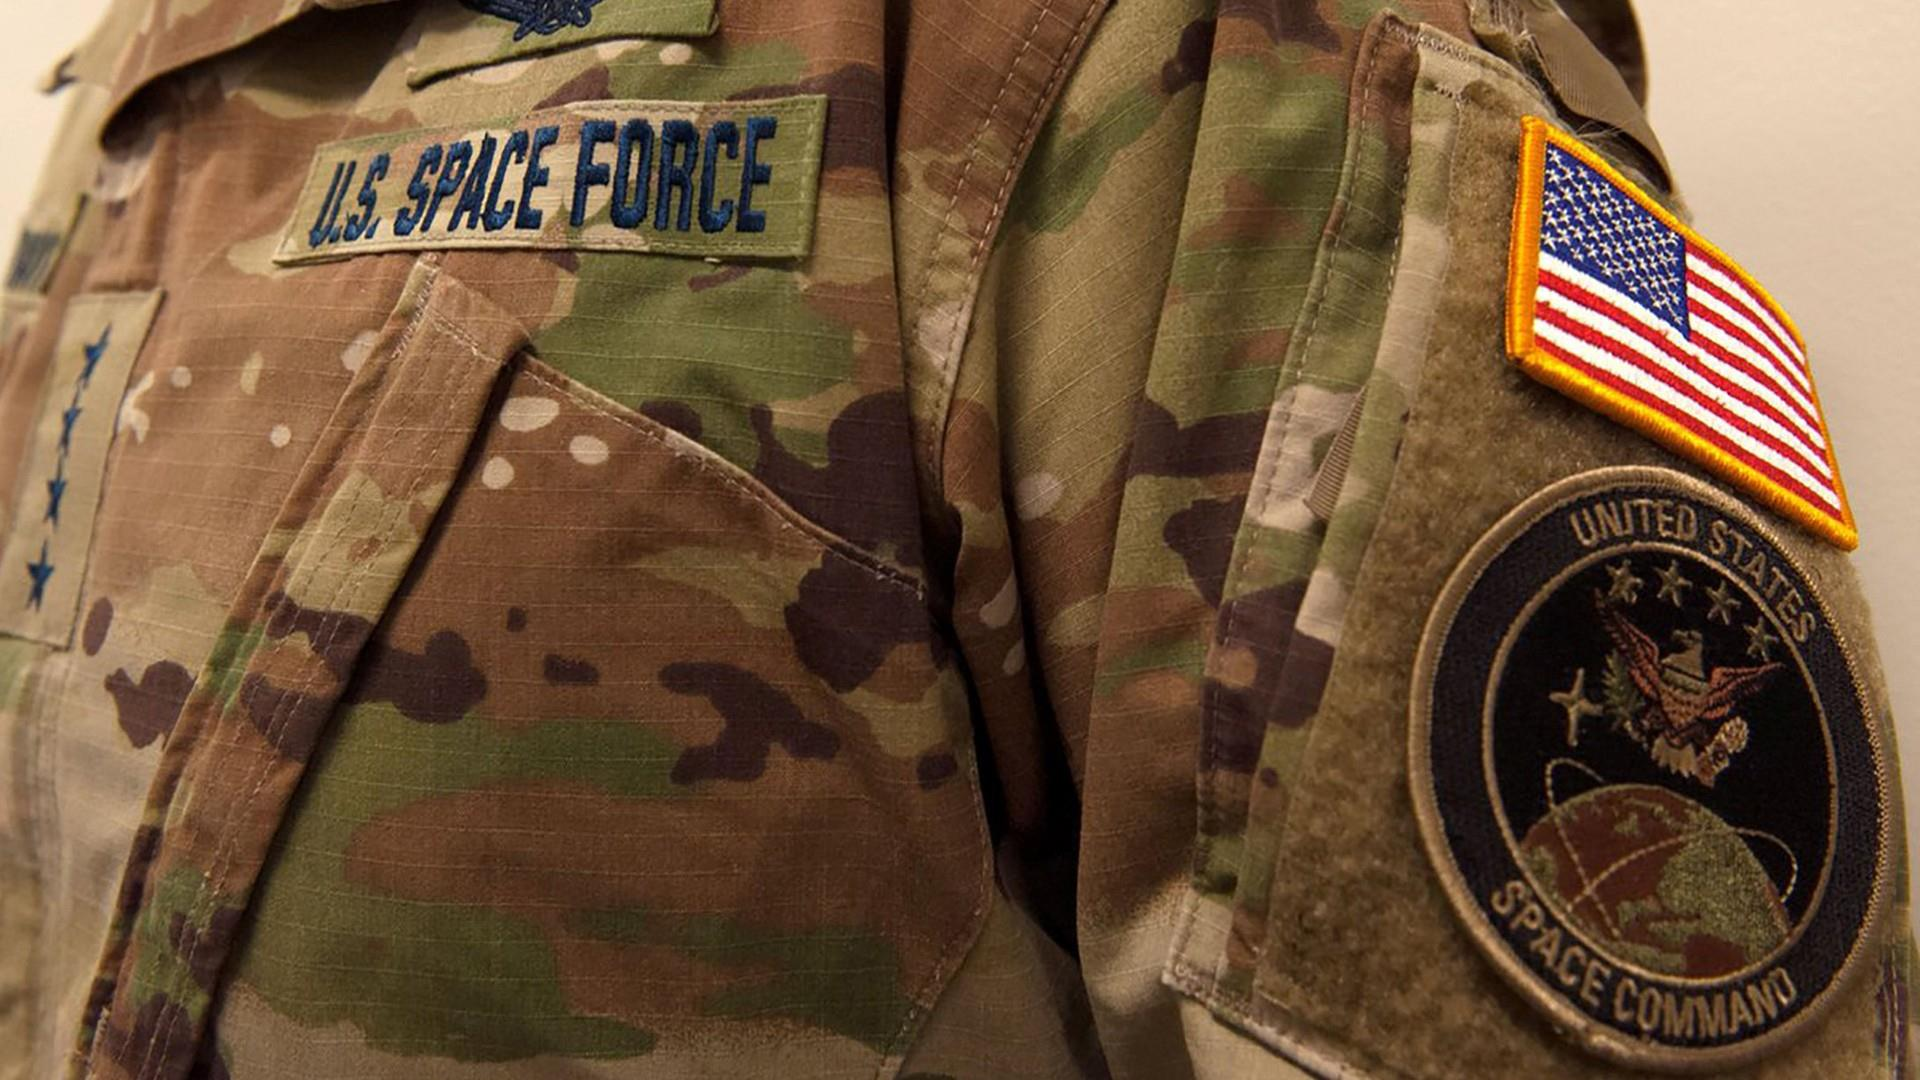 'No trees in space': Twitter dunks on Space Force's camo-print uniforms